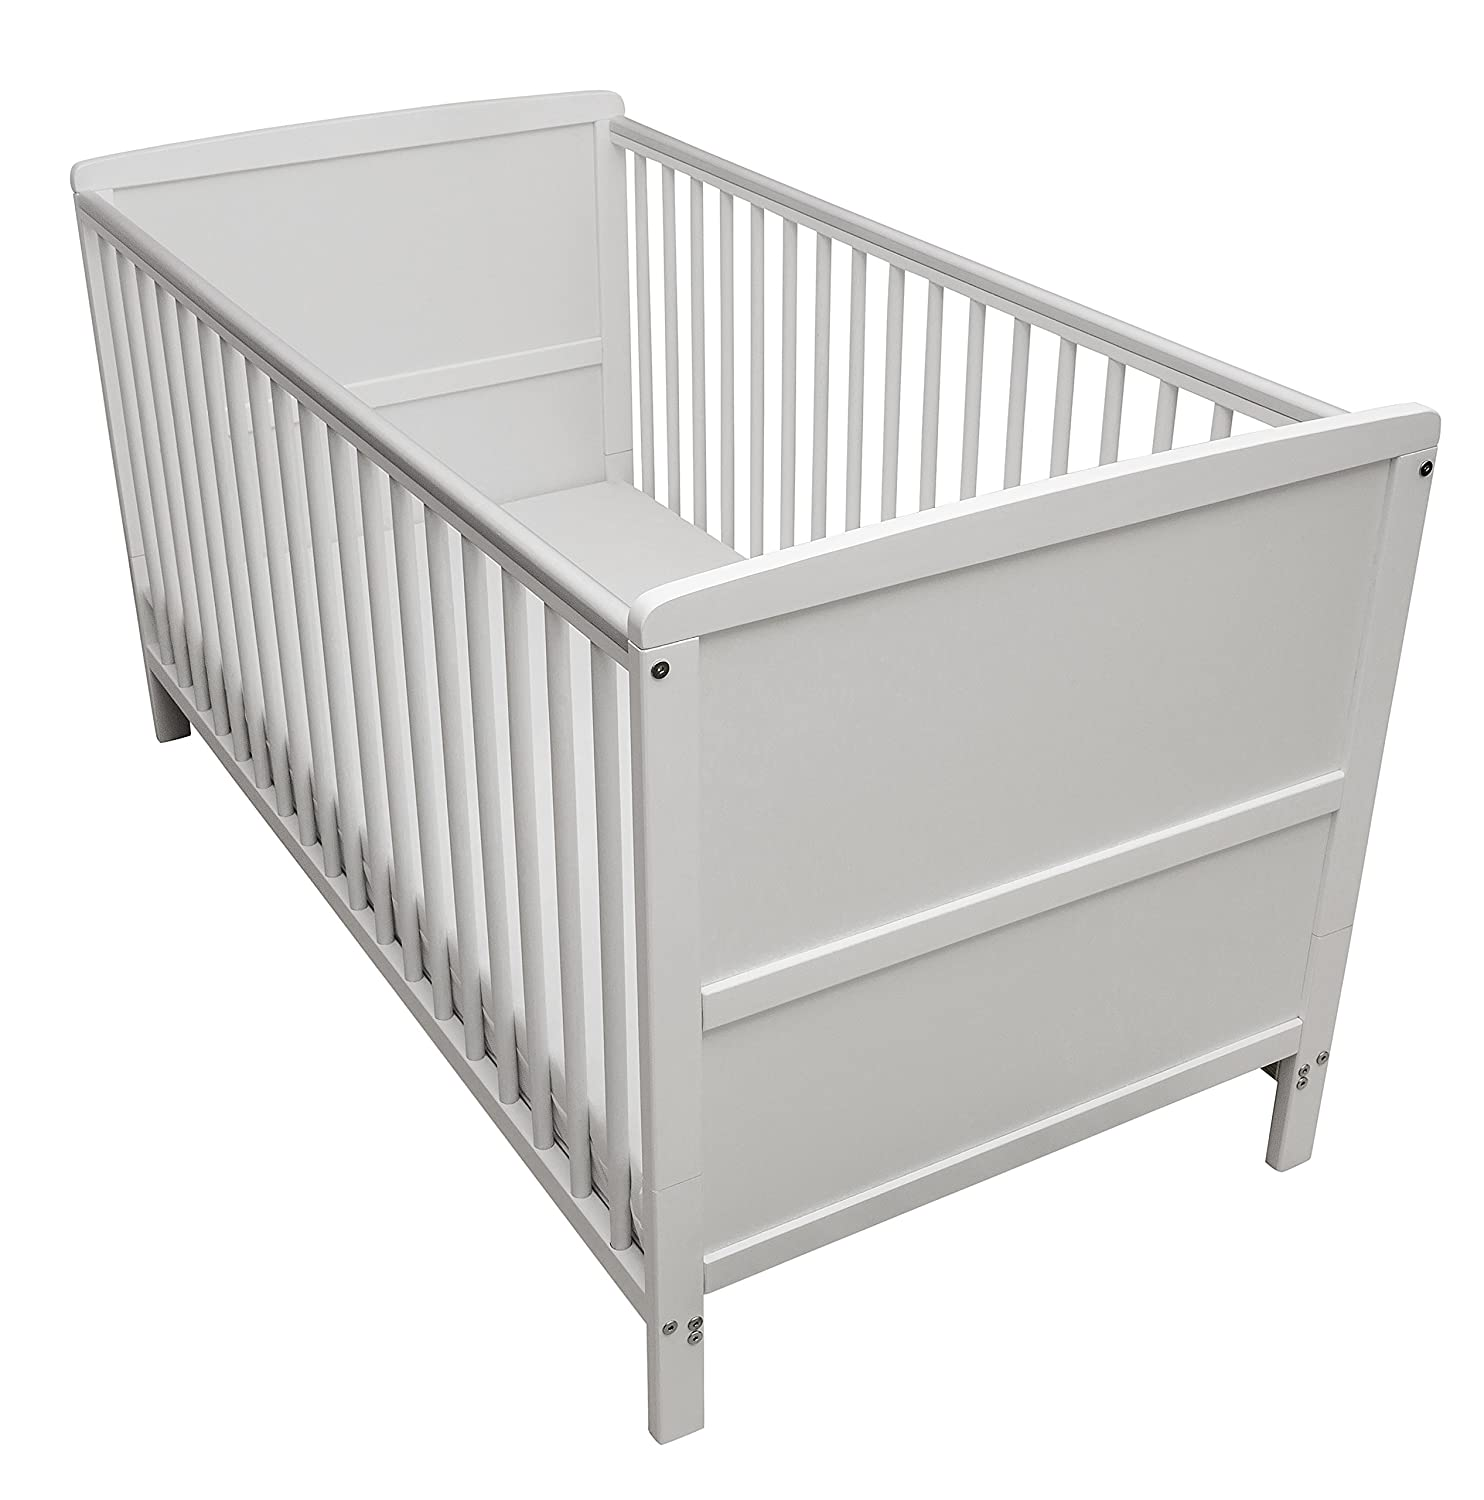 Kinder Valley Solid Pine Wood 2-in-1 Junior Cot Bed, White, 144 x 76 x 80 cm 52002